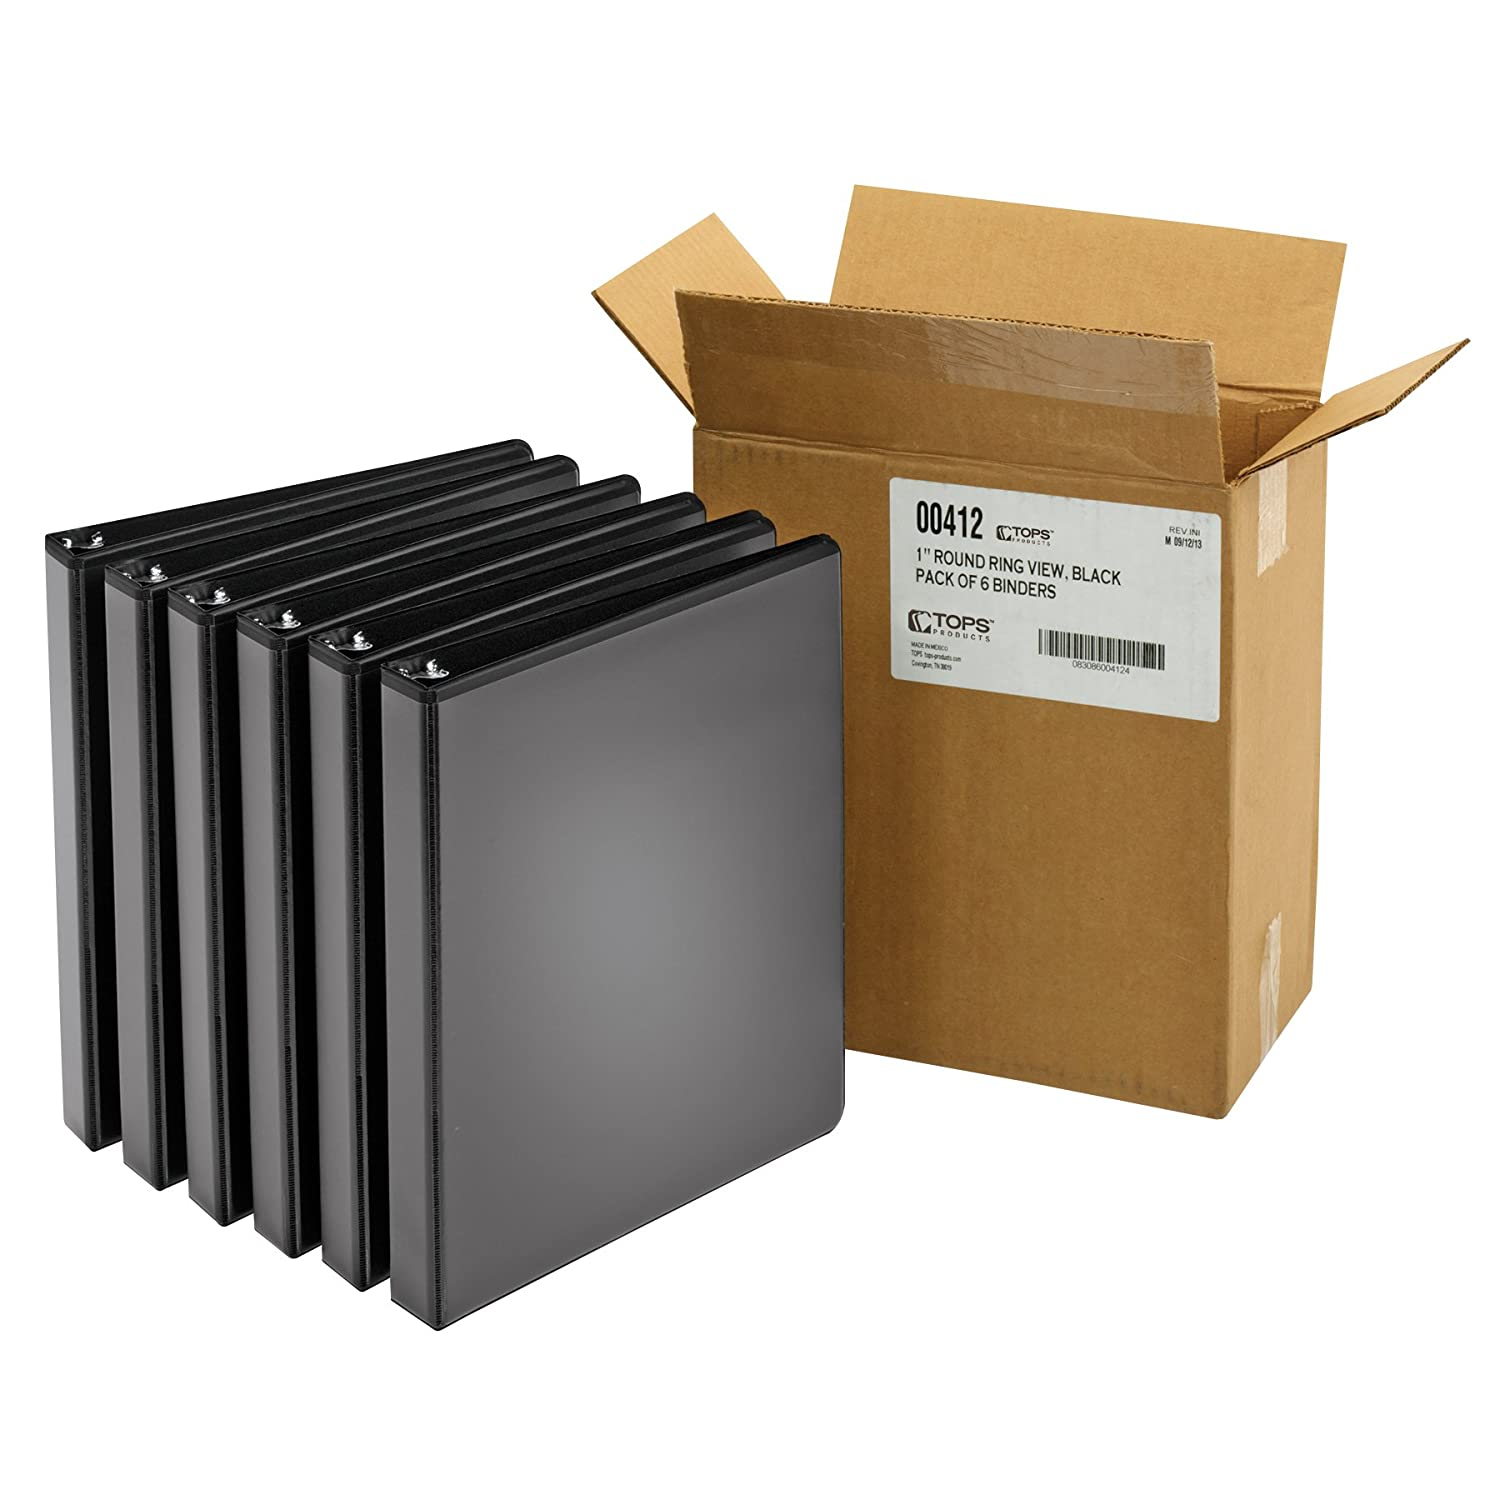 Cardinal ClearVue Round Ring View Binders, 1-Inch Capacity, Black, Case of 6 Binders (00412) TOPS Business Forms Inc.